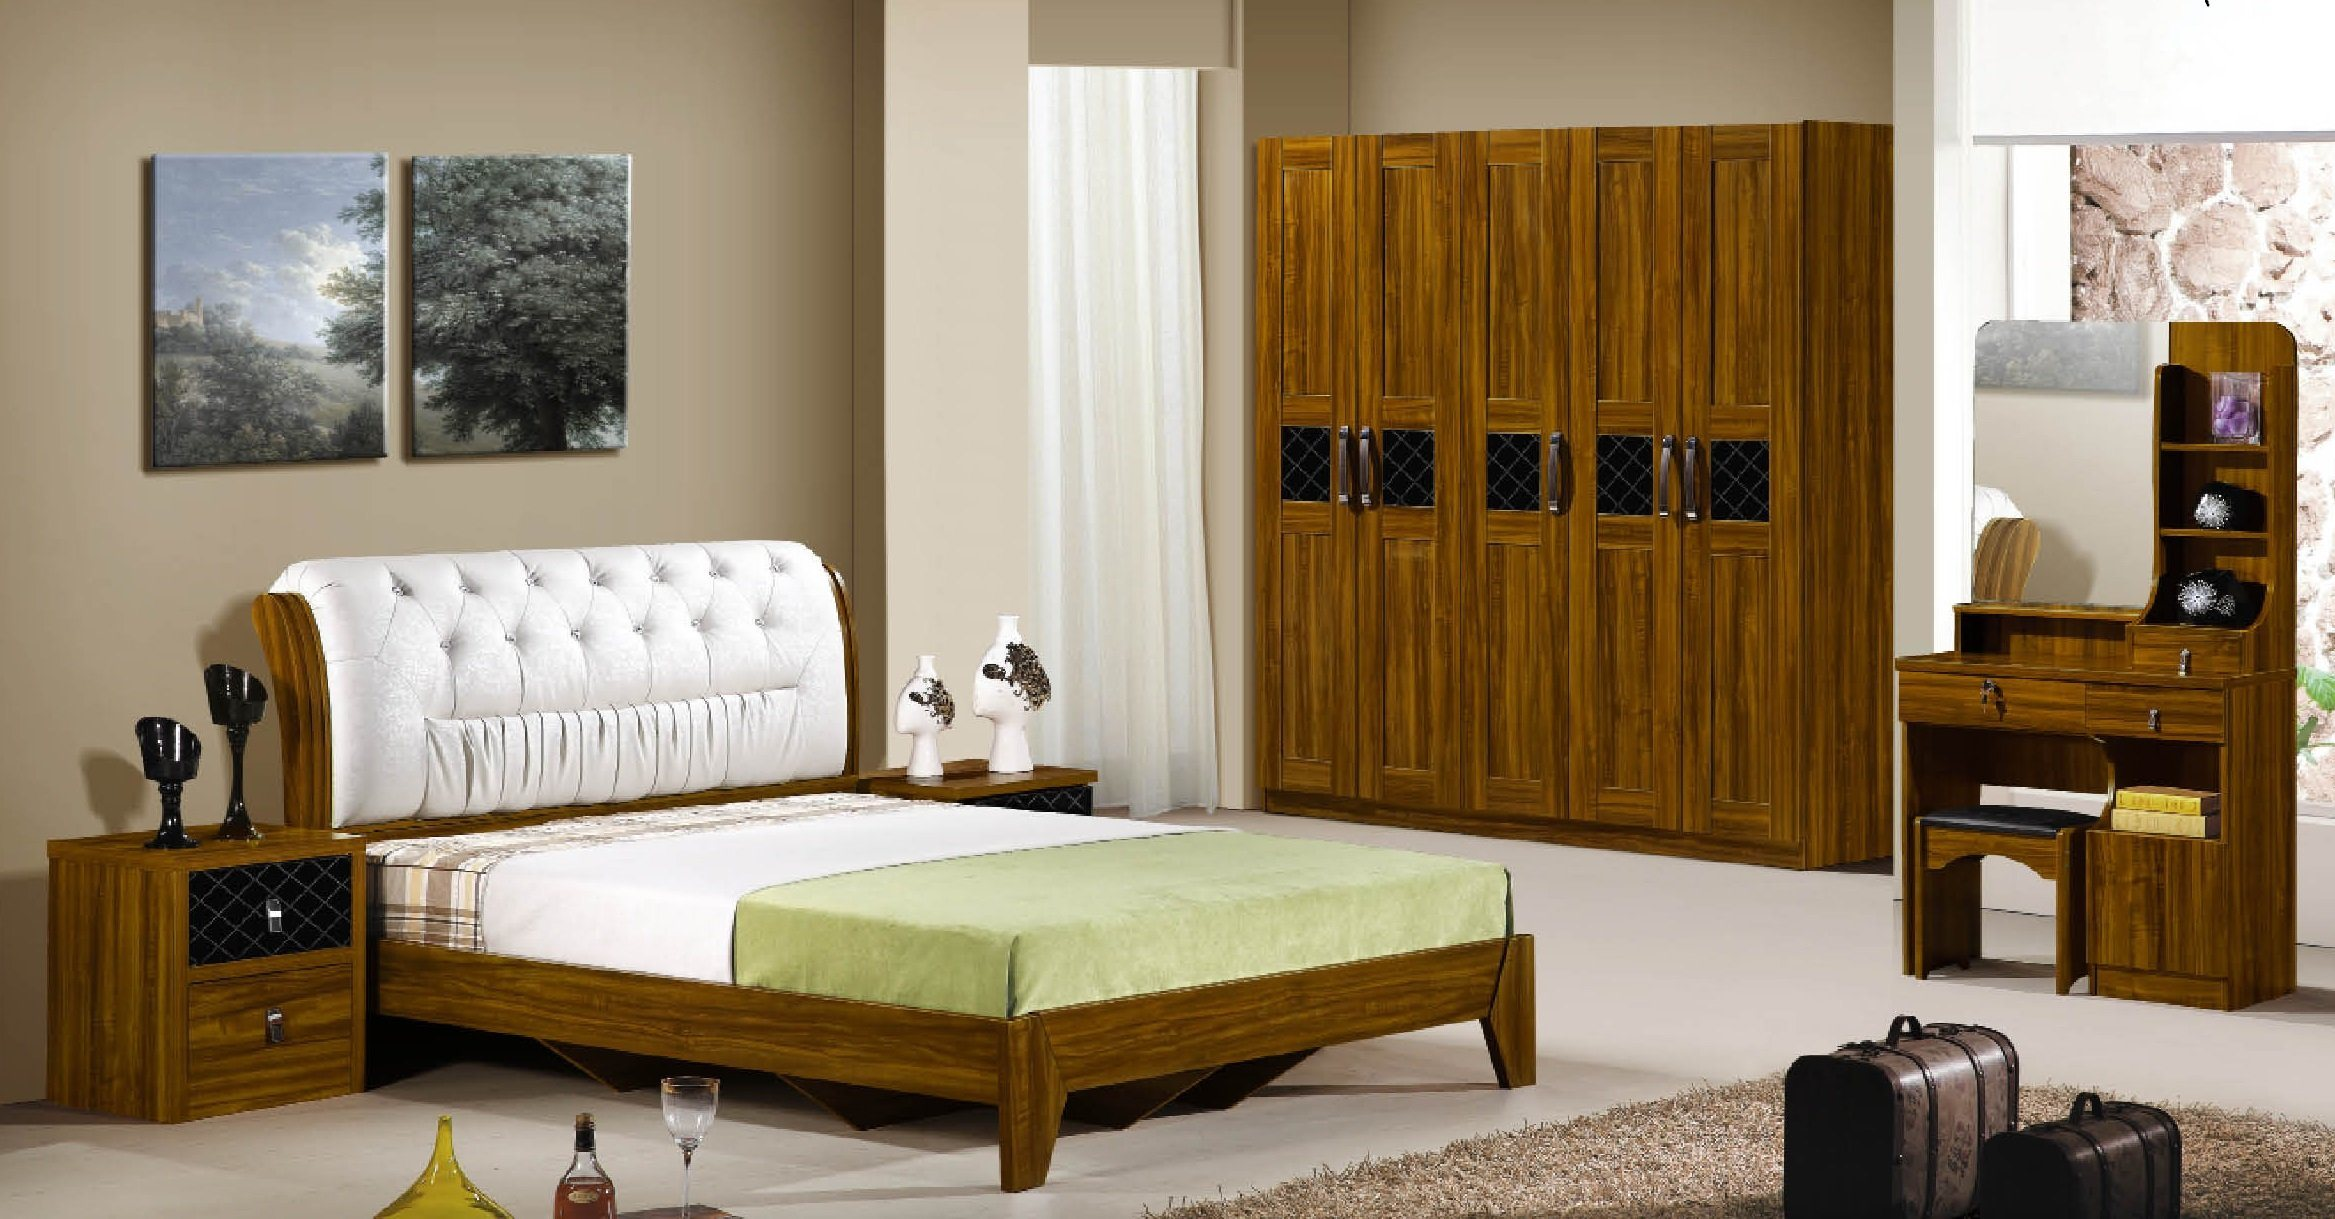 50 Beautiful Photos Of Design Decisions High Quality Bedroom Furniture Sets Wtsenates Info